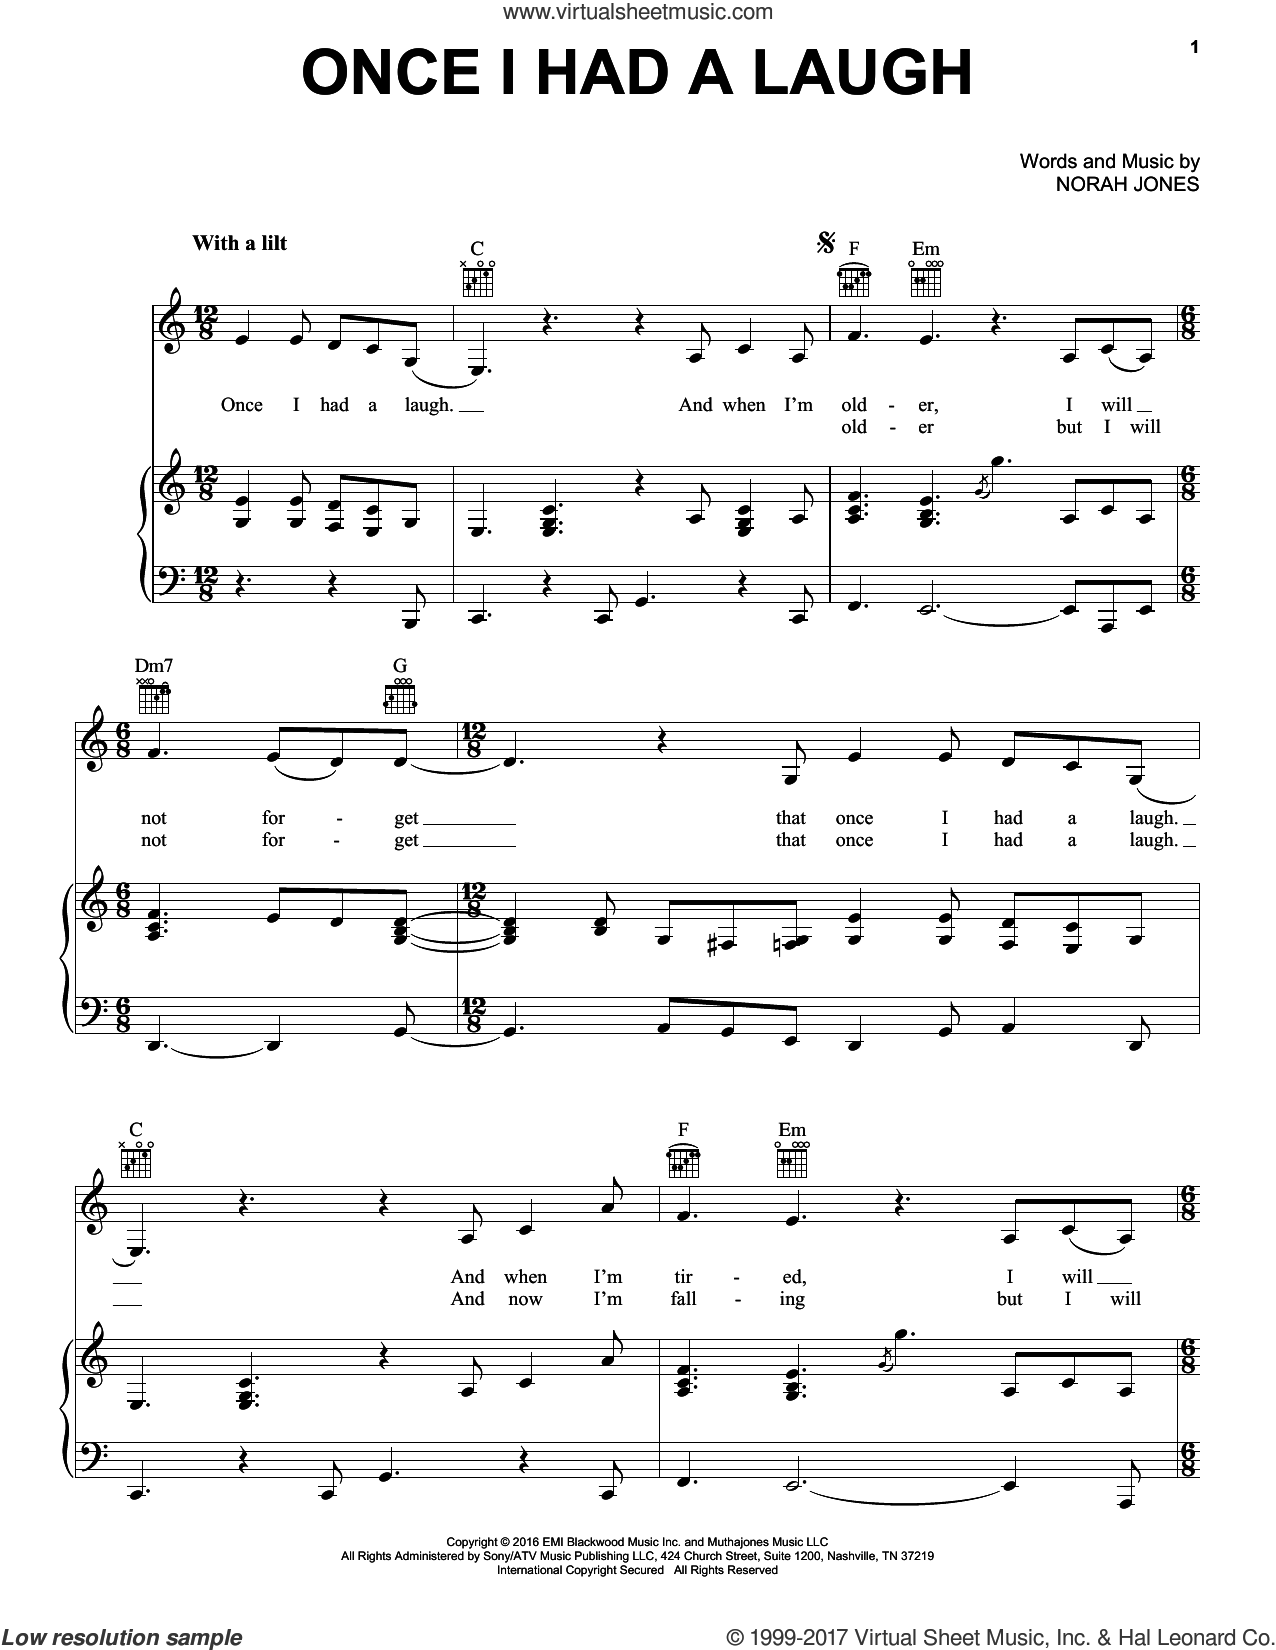 Once I Had A Laugh sheet music for voice, piano or guitar by Norah Jones. Score Image Preview.